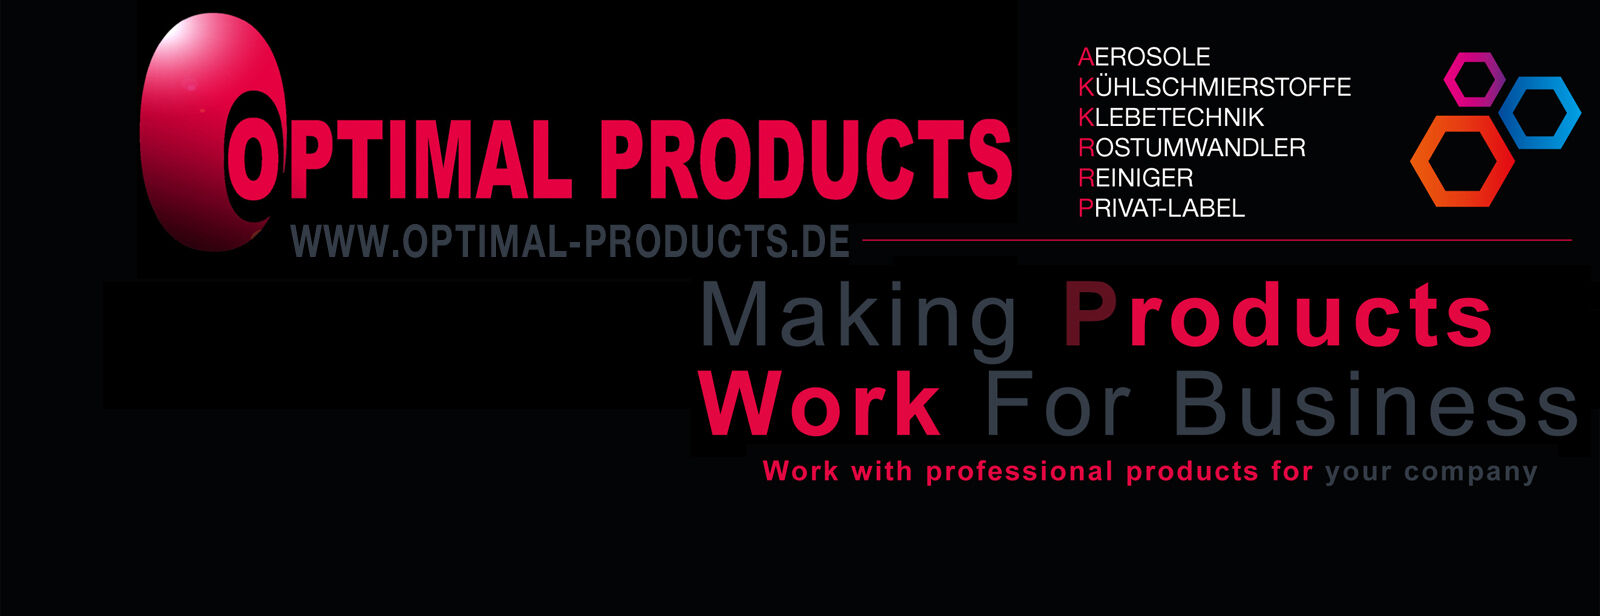 premiumproducts24